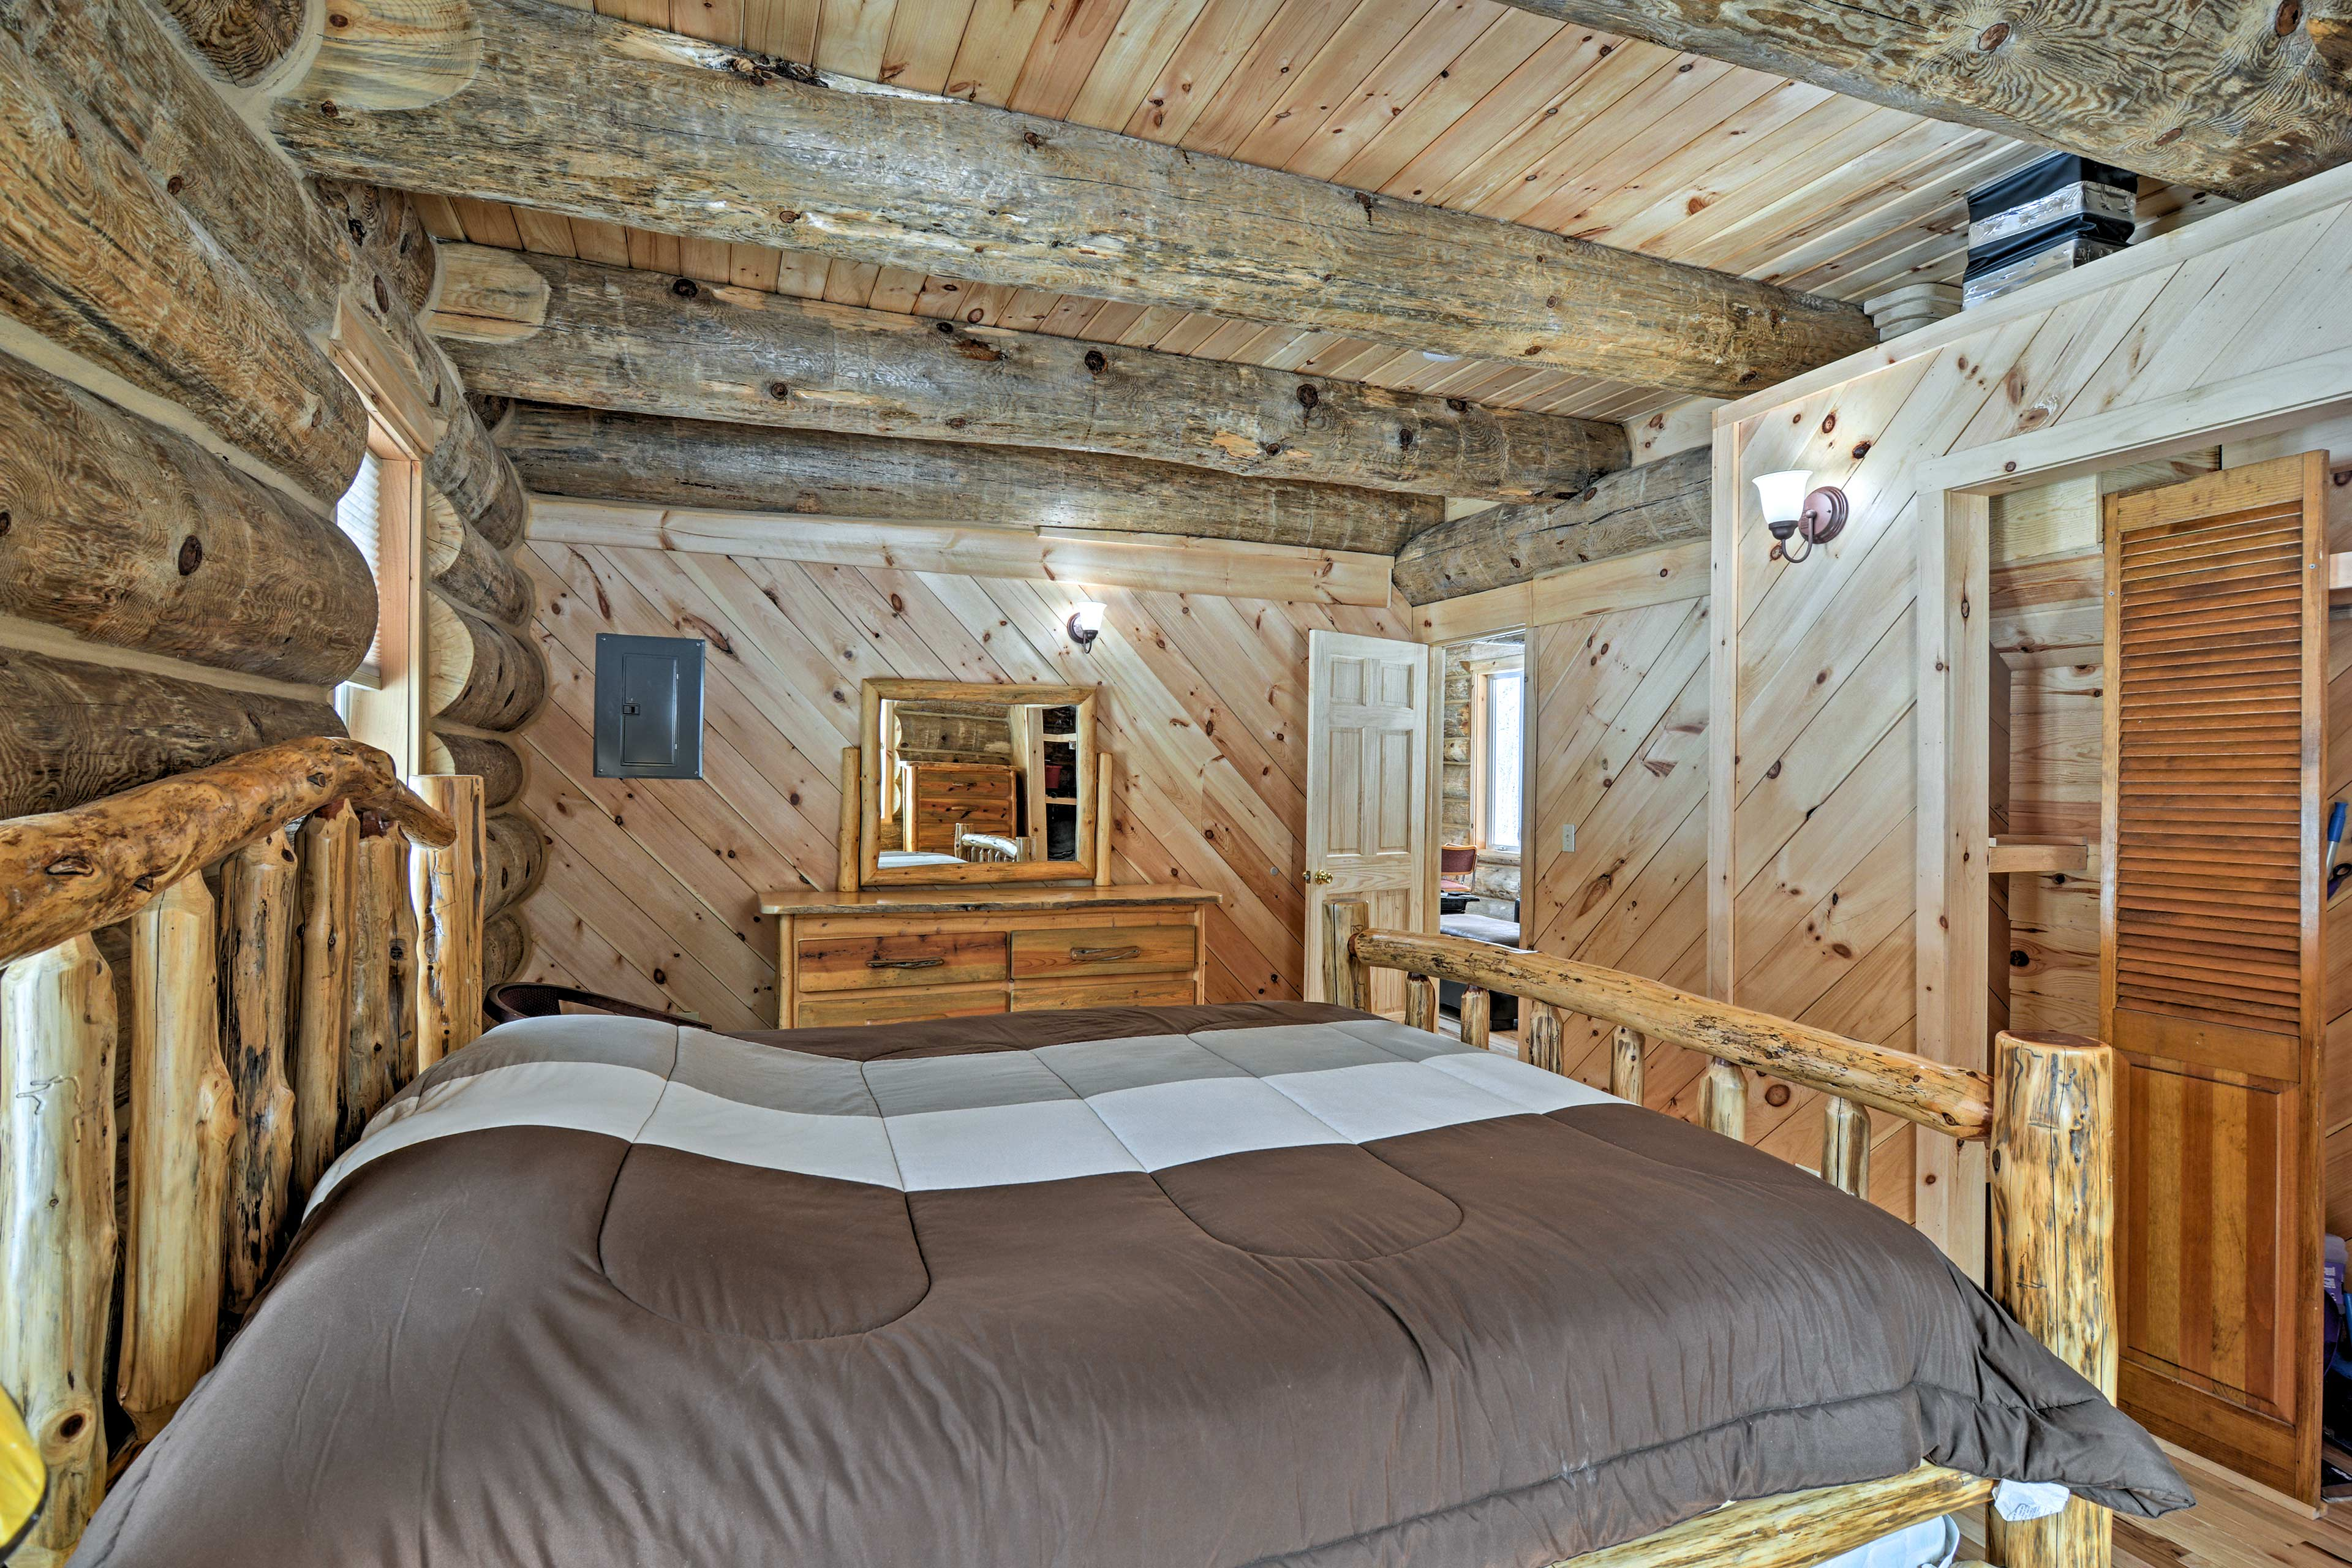 Inside the cabin, you'll find 2 bedrooms, a loft, and 1 full bathroom.